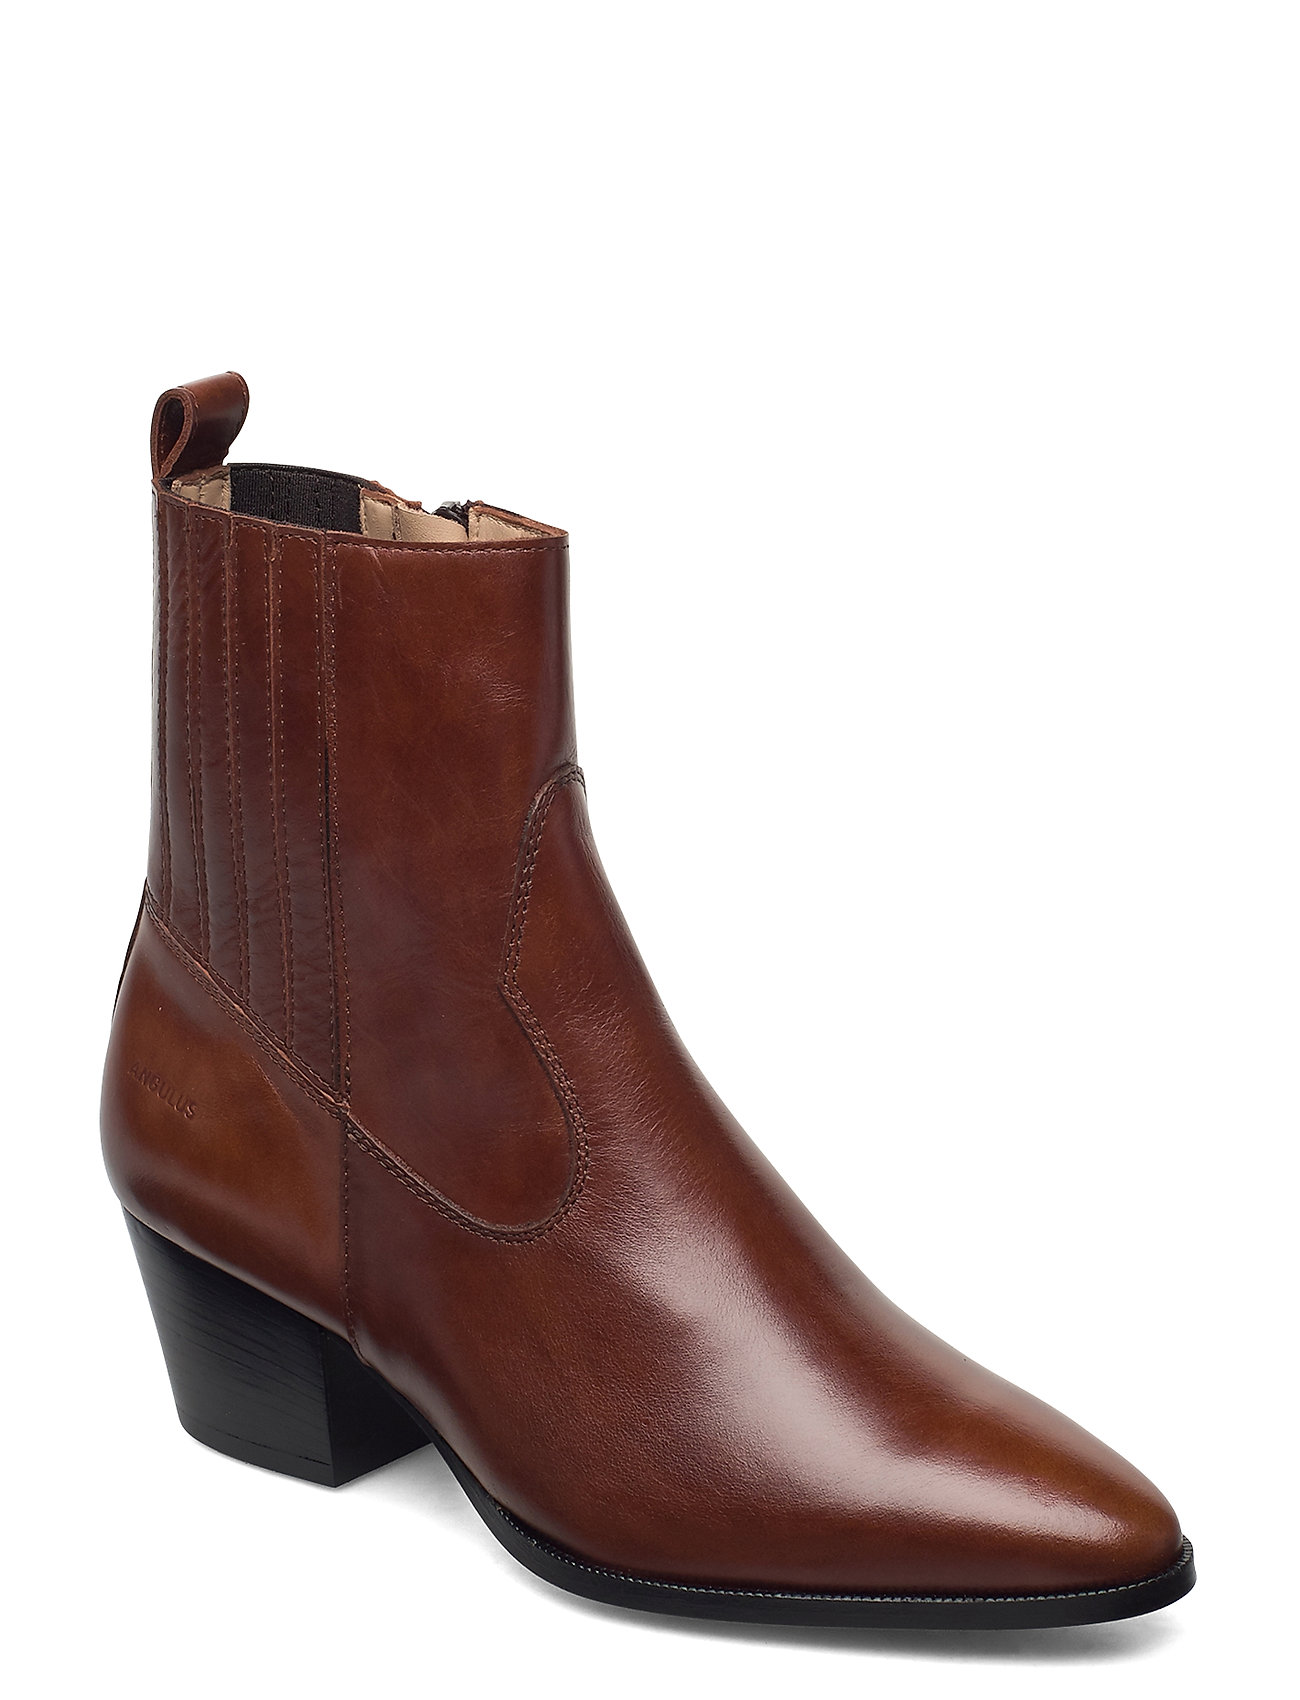 Image of Booties - Block Heel - With Elas Shoes Boots Ankle Boots Ankle Boot - Heel Brun ANGULUS (3446806853)